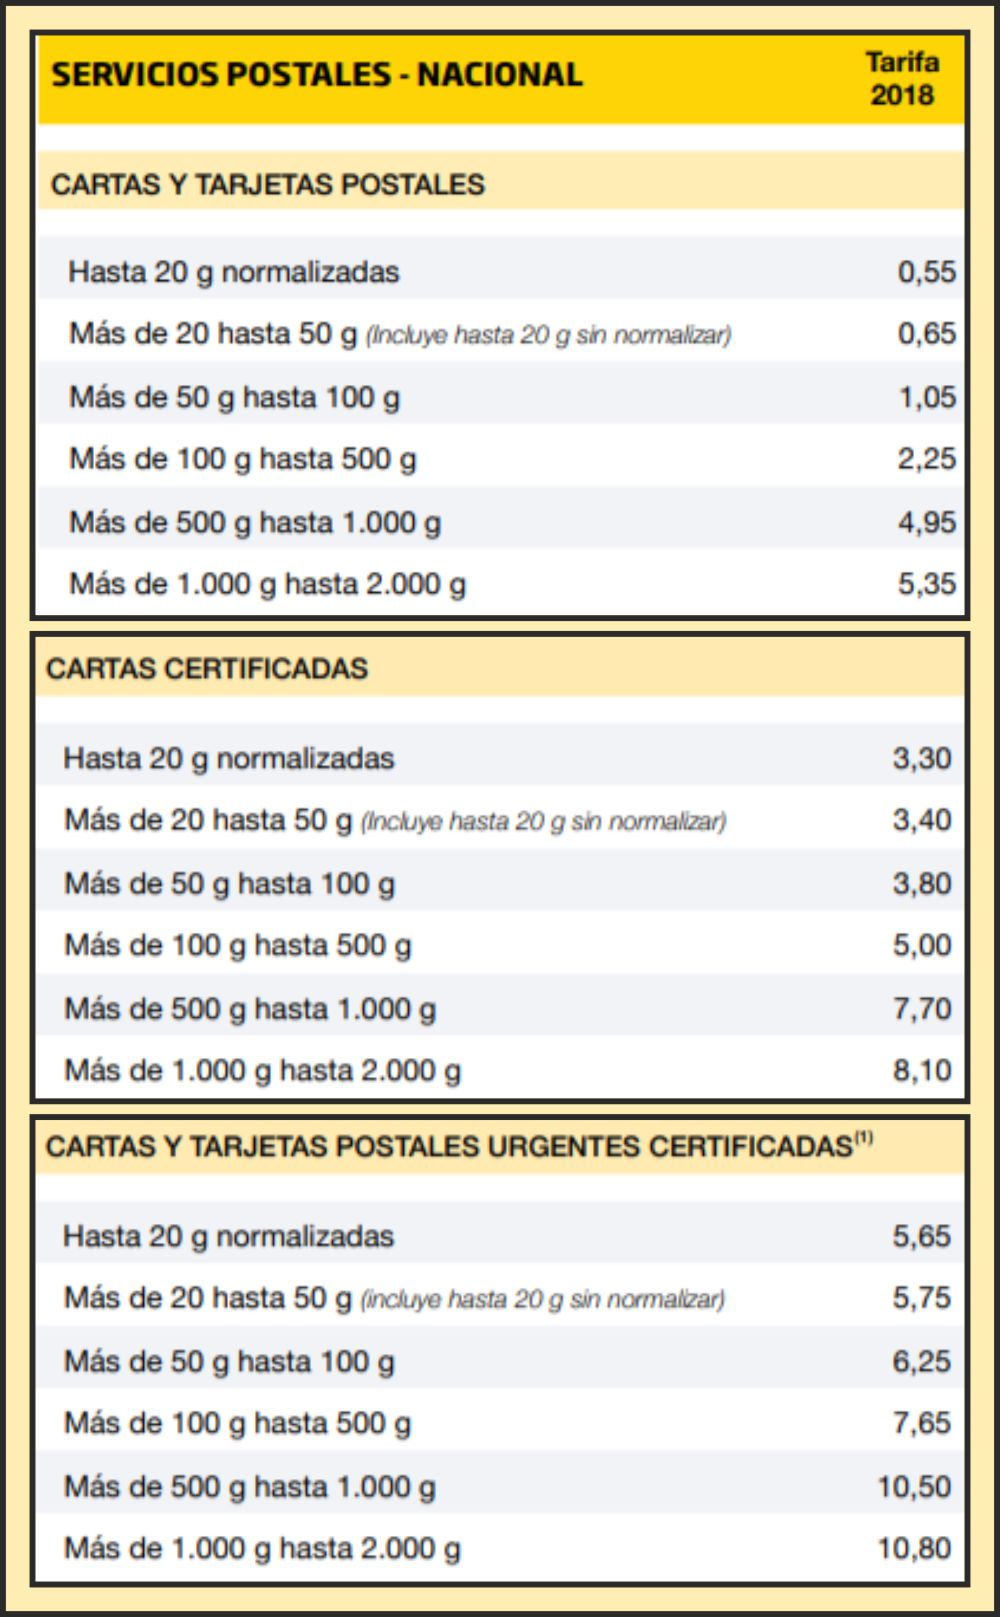 CORREOS NORMAL CERTIFICADO URGENTE.jpg